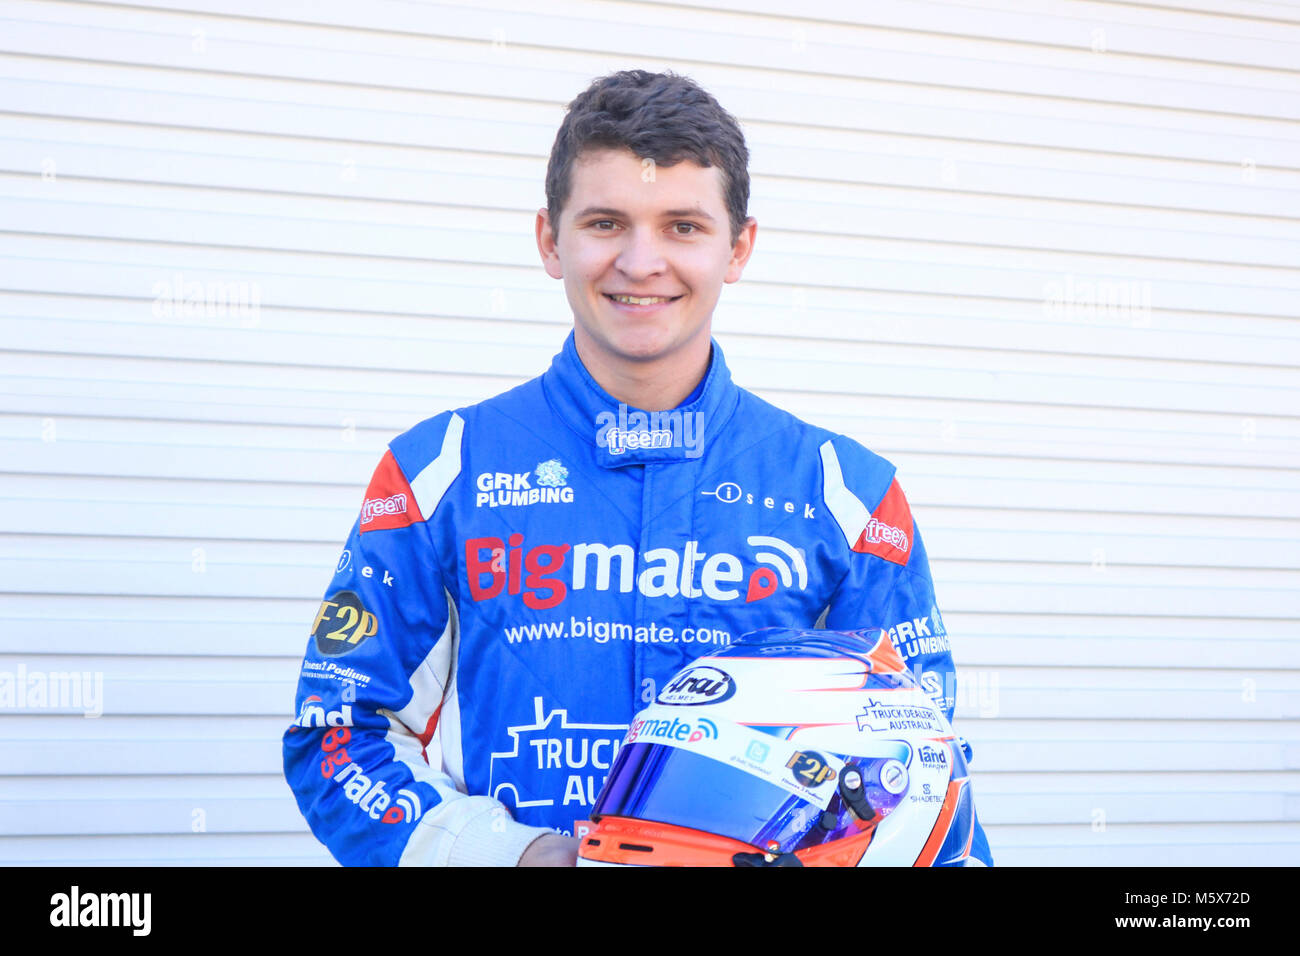 Adelaide, Australia. 27th Feb, 2018. 22 year old Rookie Supercar racing driver Todd Hazelwood who will compete in - Stock Image